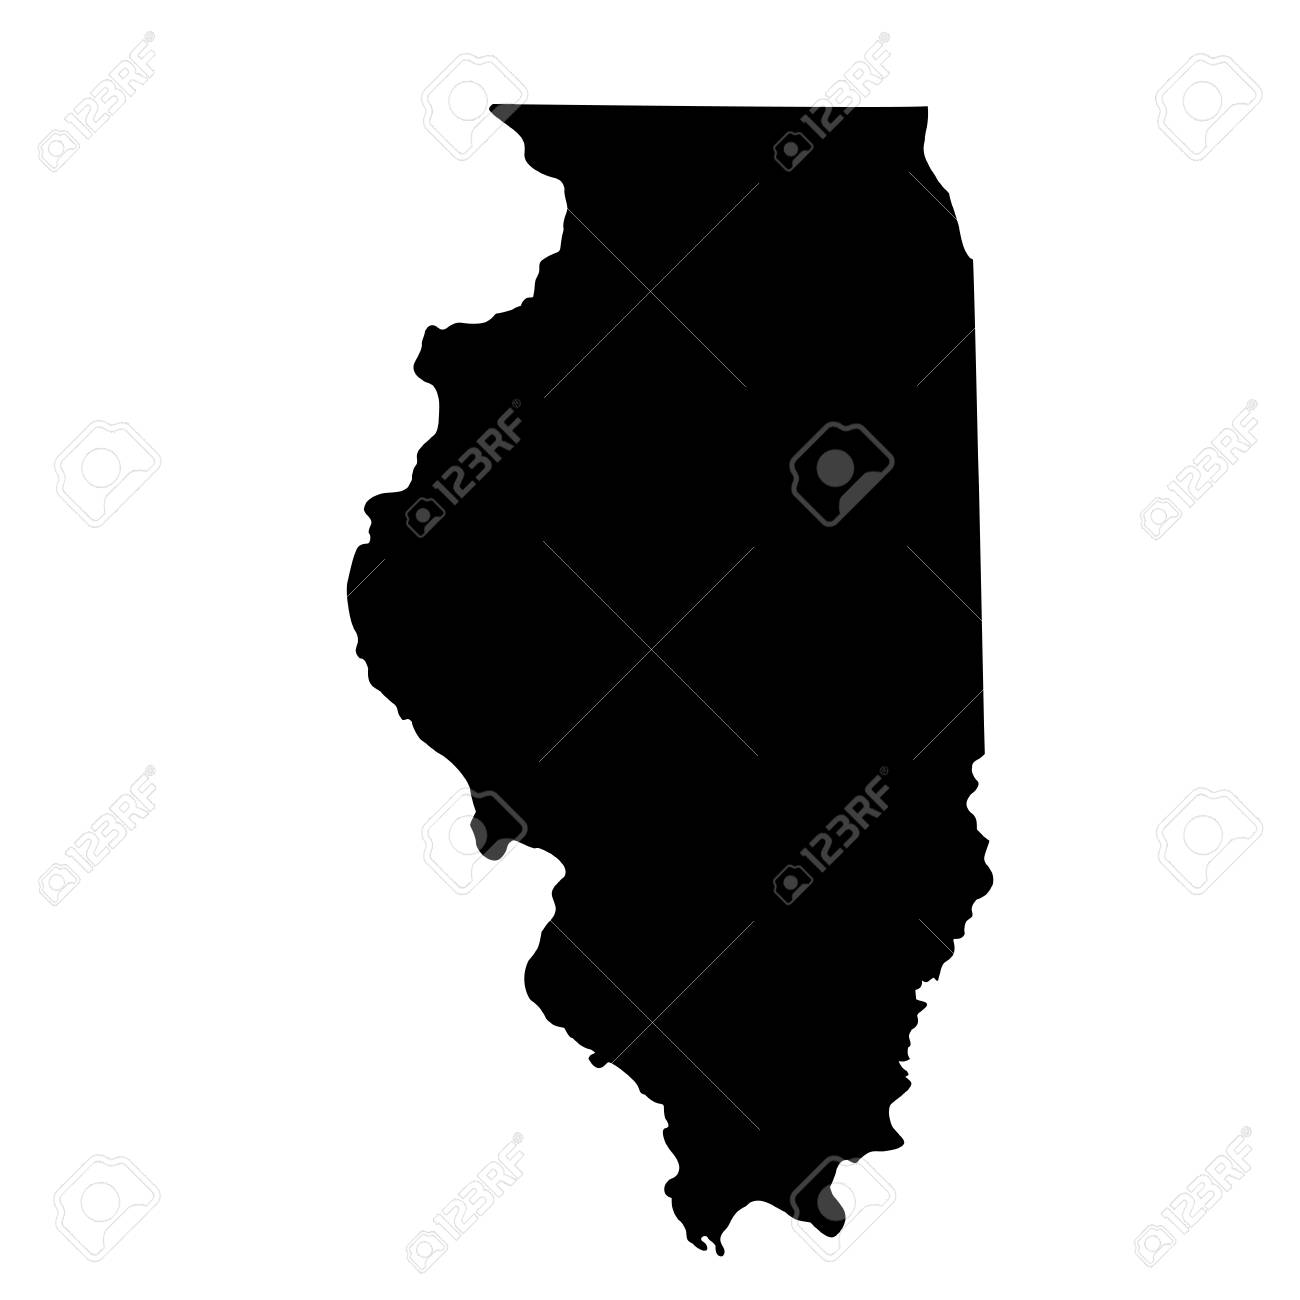 Map Of The U.S. State Illinois Royalty Free Cliparts, Vectors, And S In Illinois Map on